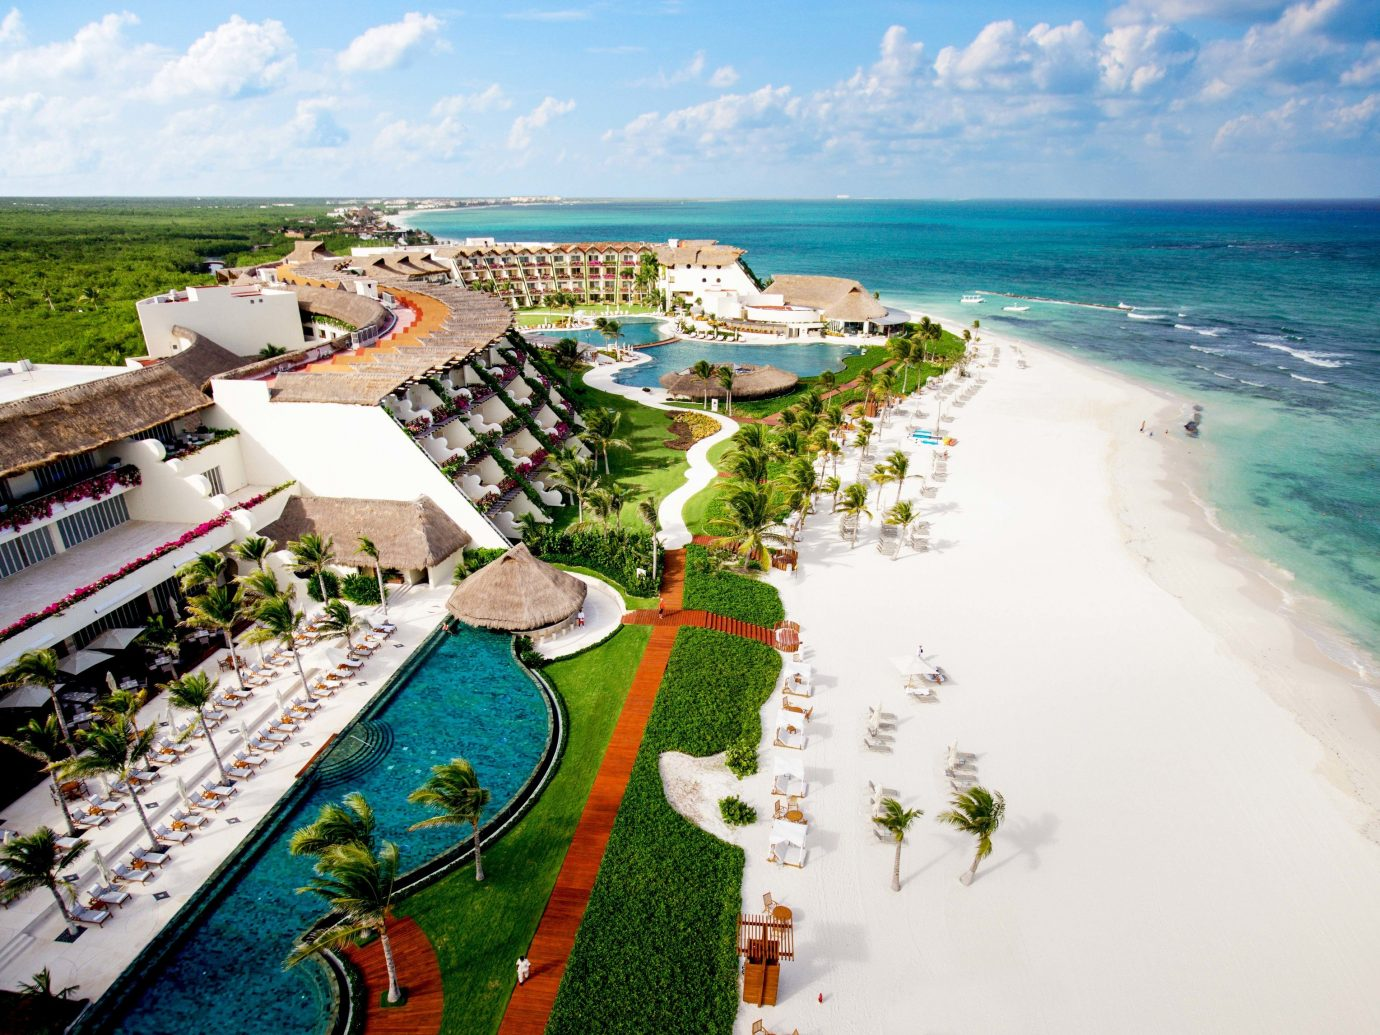 All-inclusive All-Inclusive Resorts Mexico Riviera Maya, Mexico Resort tourism leisure vacation real estate resort town caribbean Beach Coast